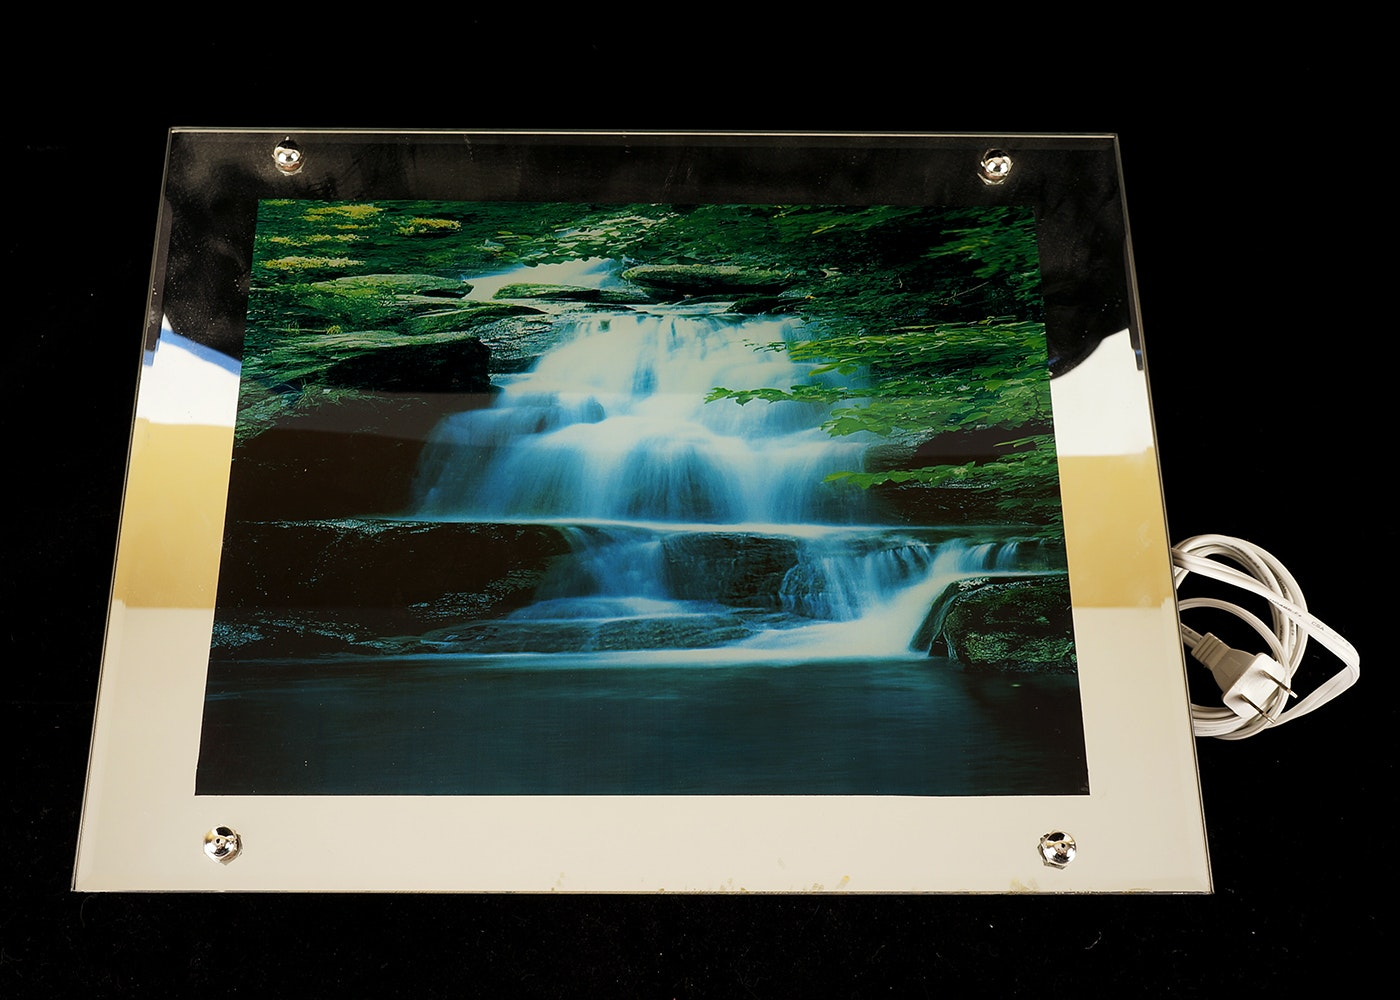 visiontac electronic waterfall picture ebth rh ebth com Instruction Manual Example Instruction Manual Example